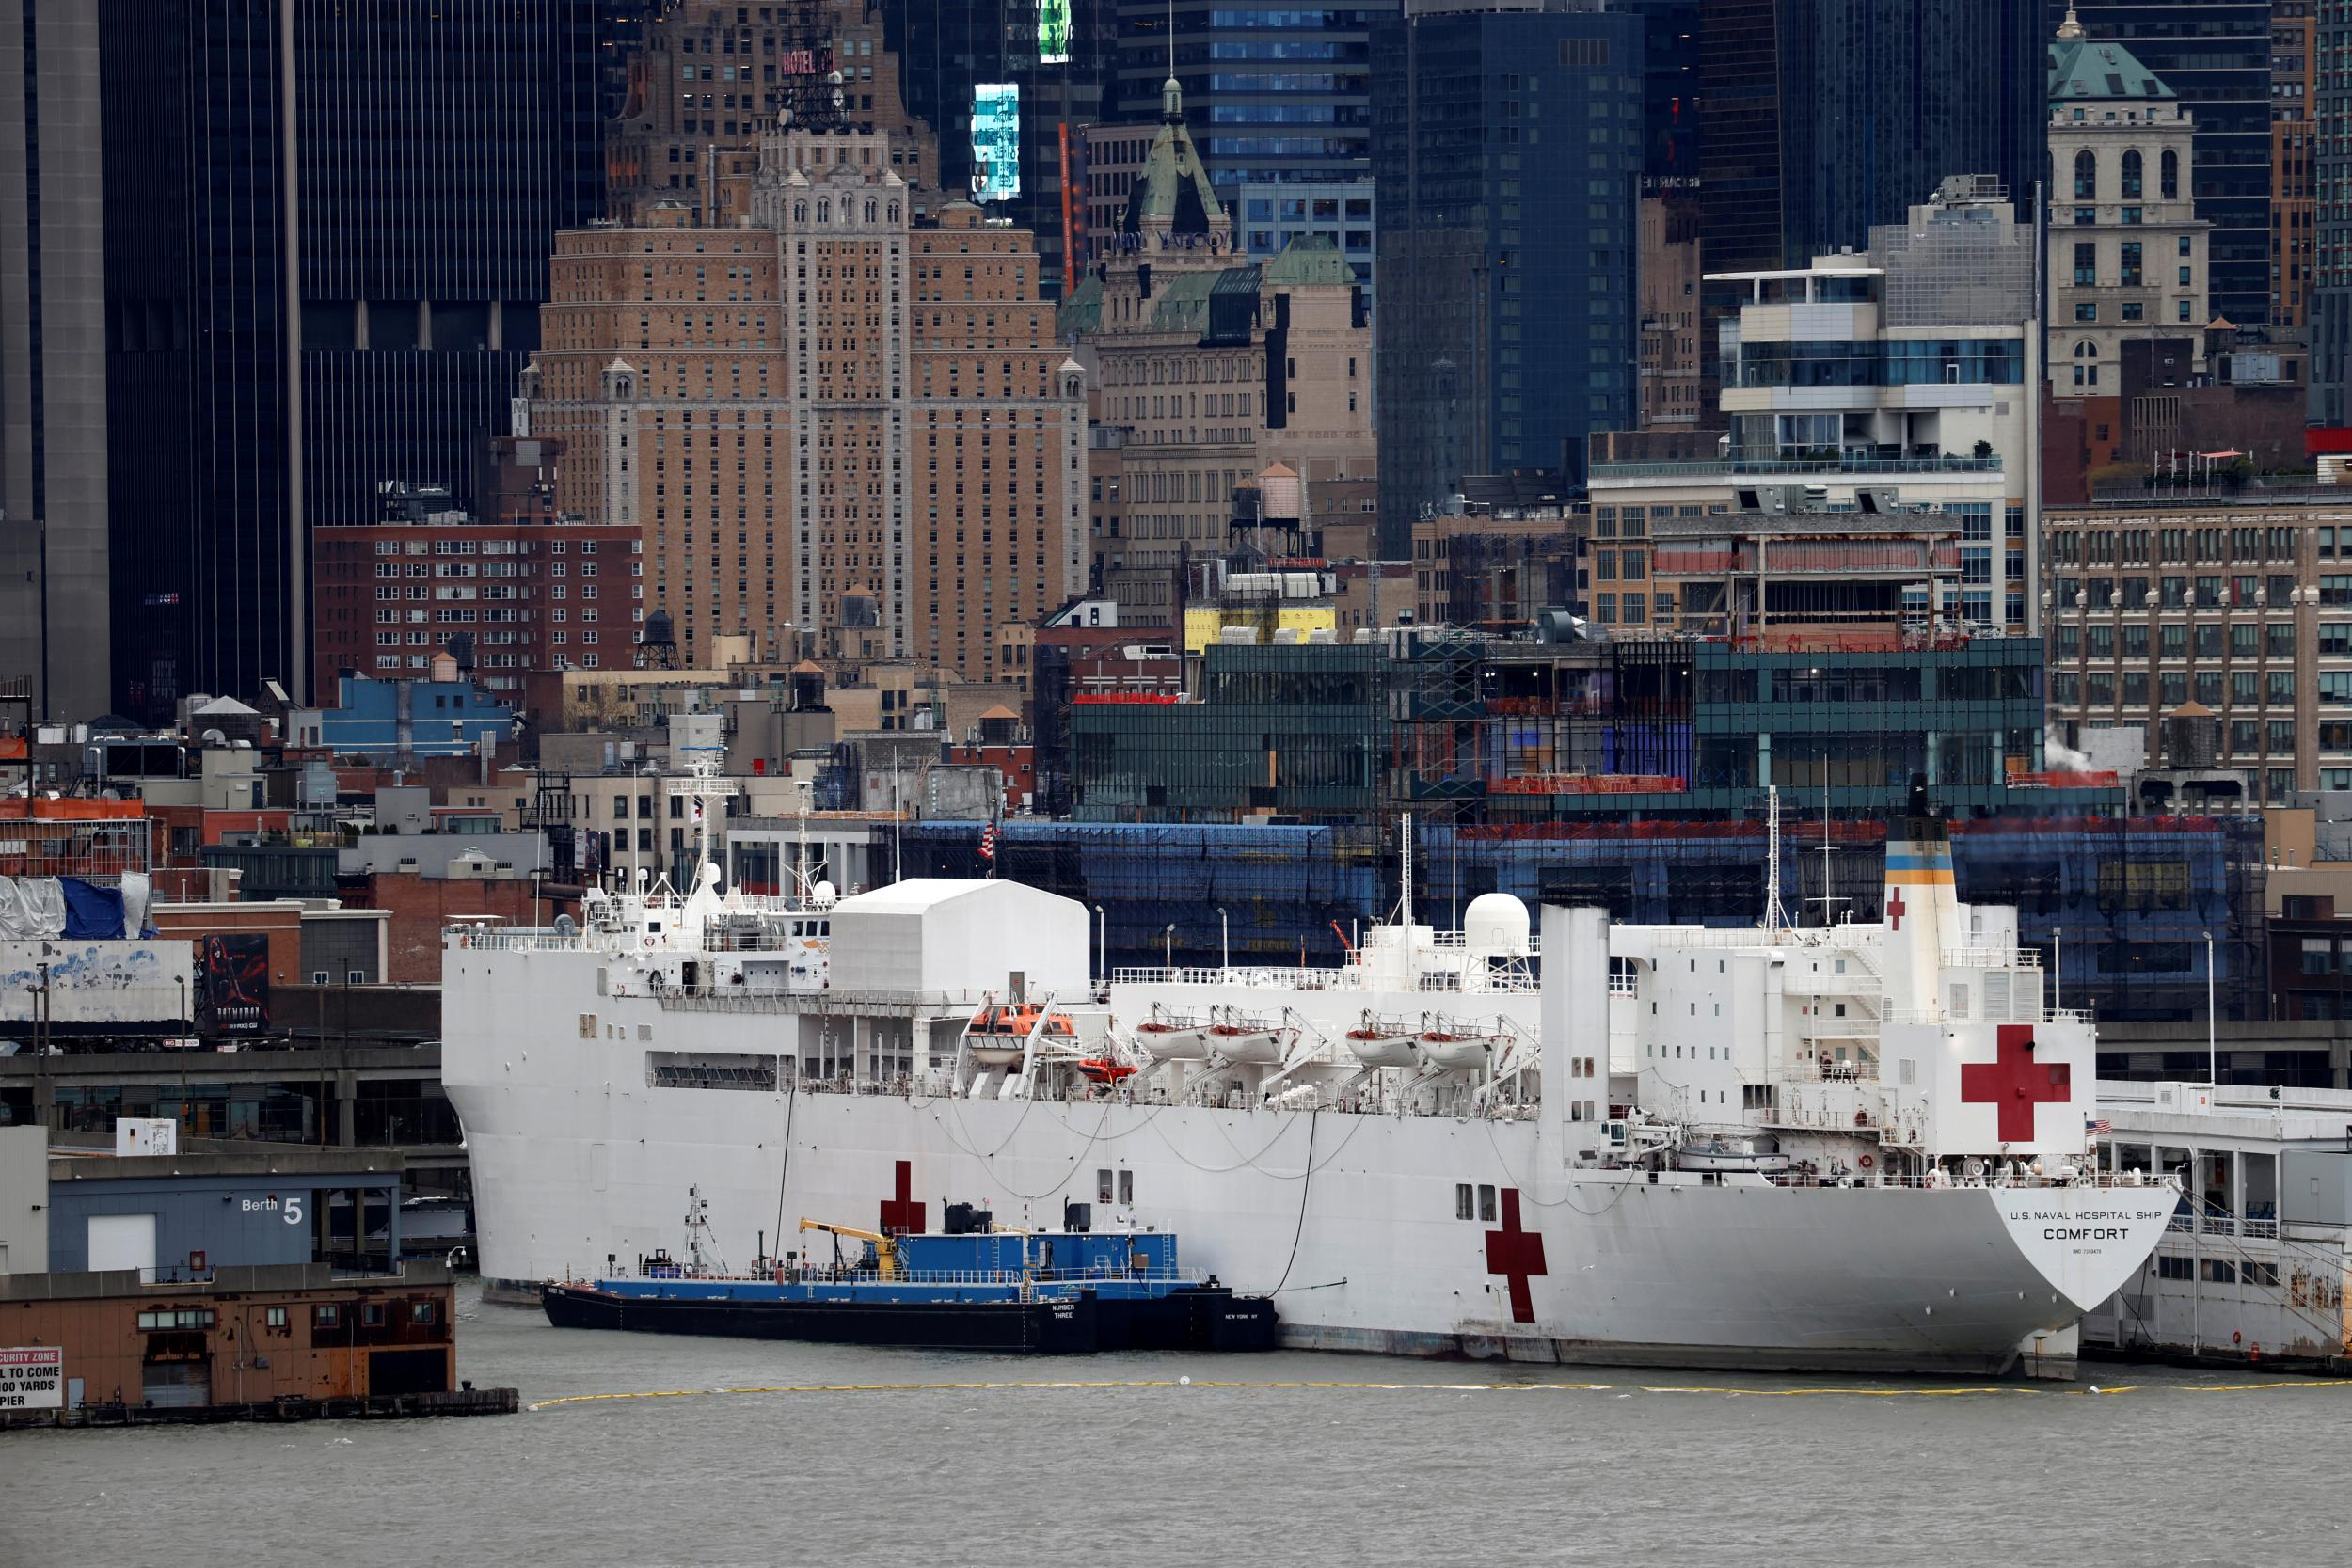 Coronavirus: Navy Hospital ship to leave New York after treating 179 Covid-19 patients in three weeks thumbnail